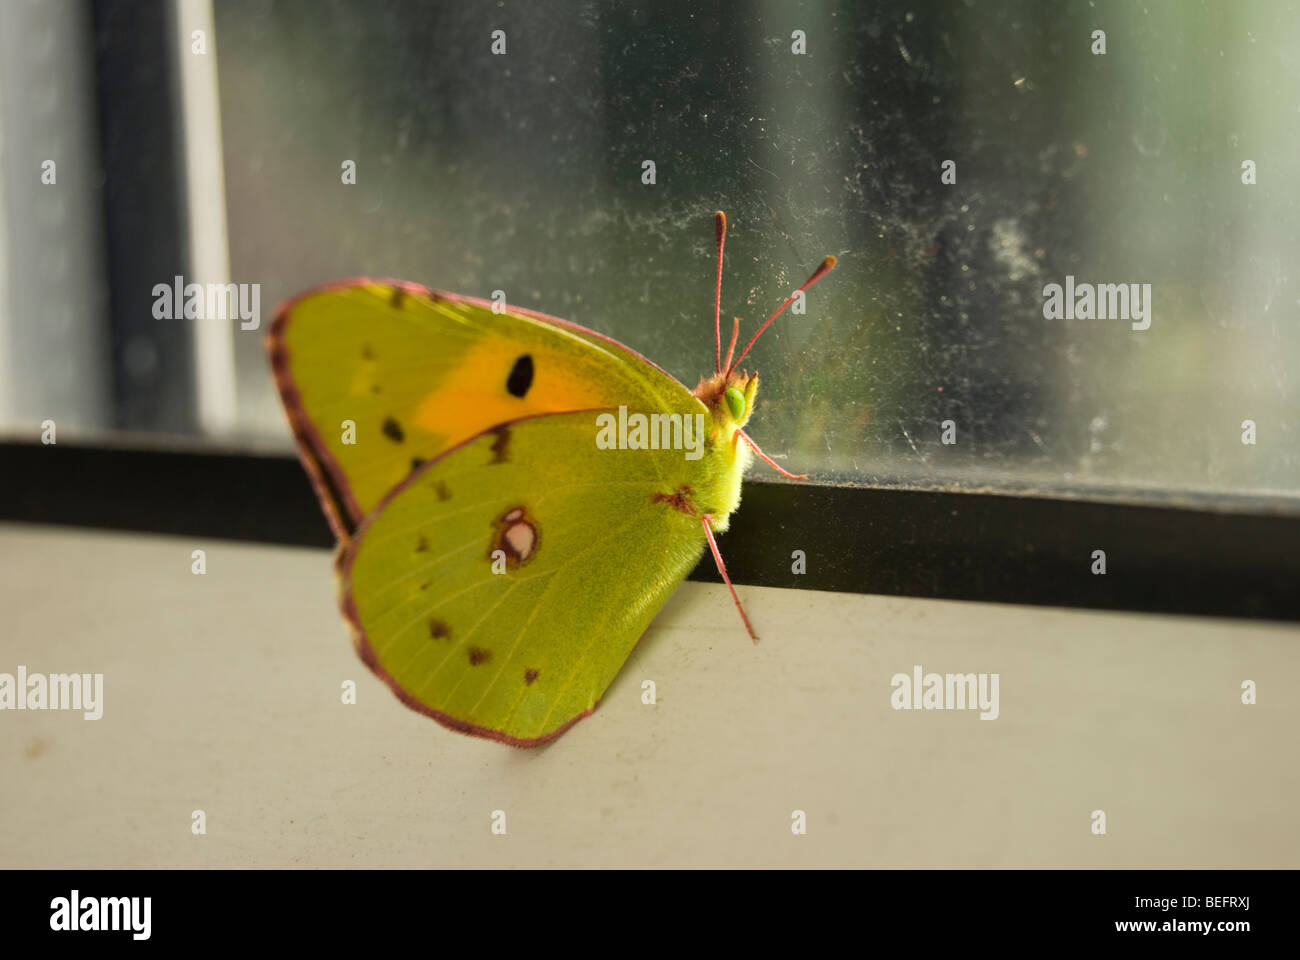 Clouded Yellow butterlfy at a window - Stock Image